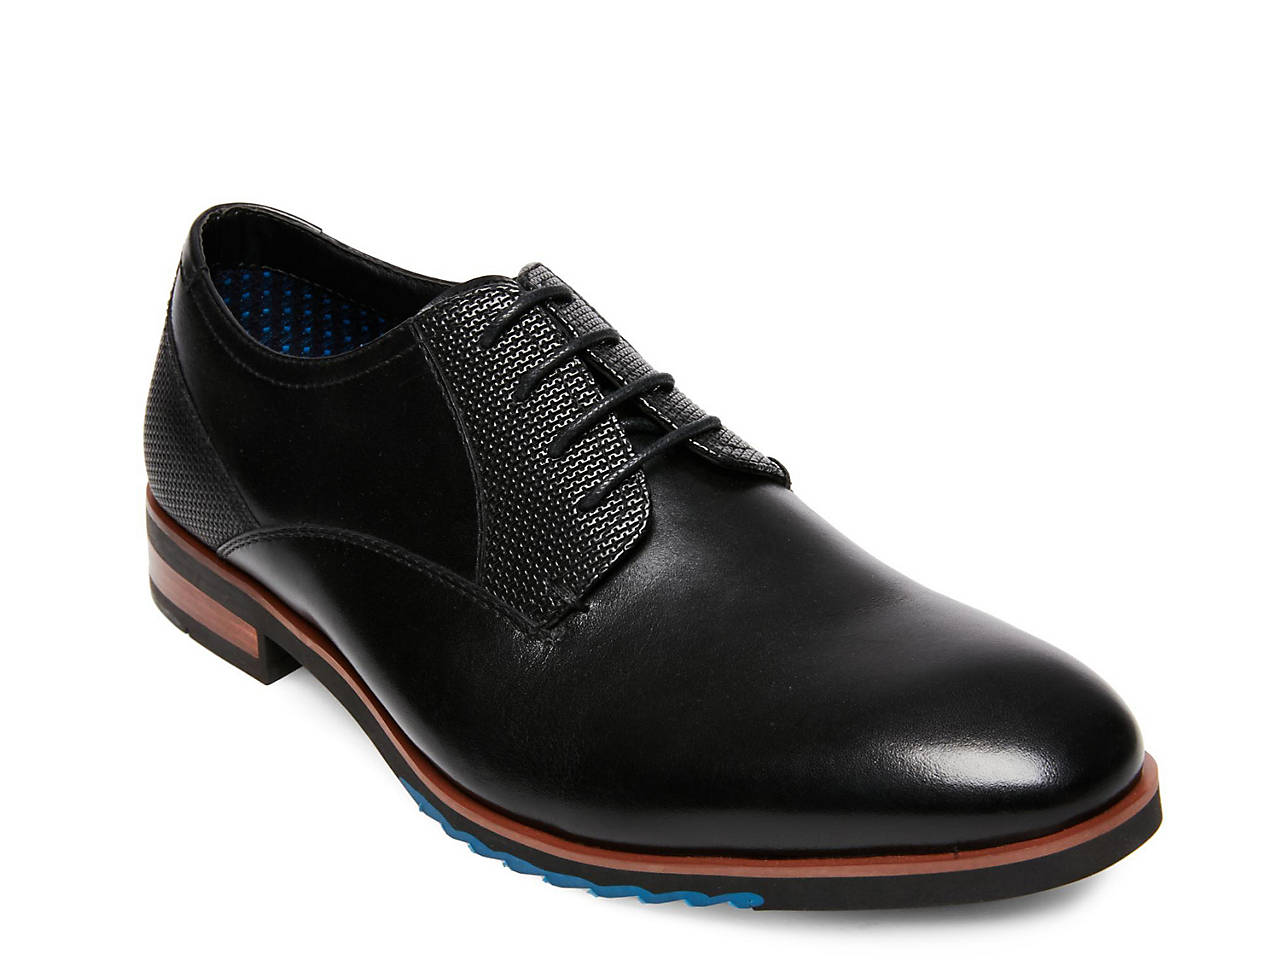 Lawton Oxford by Steve Madden